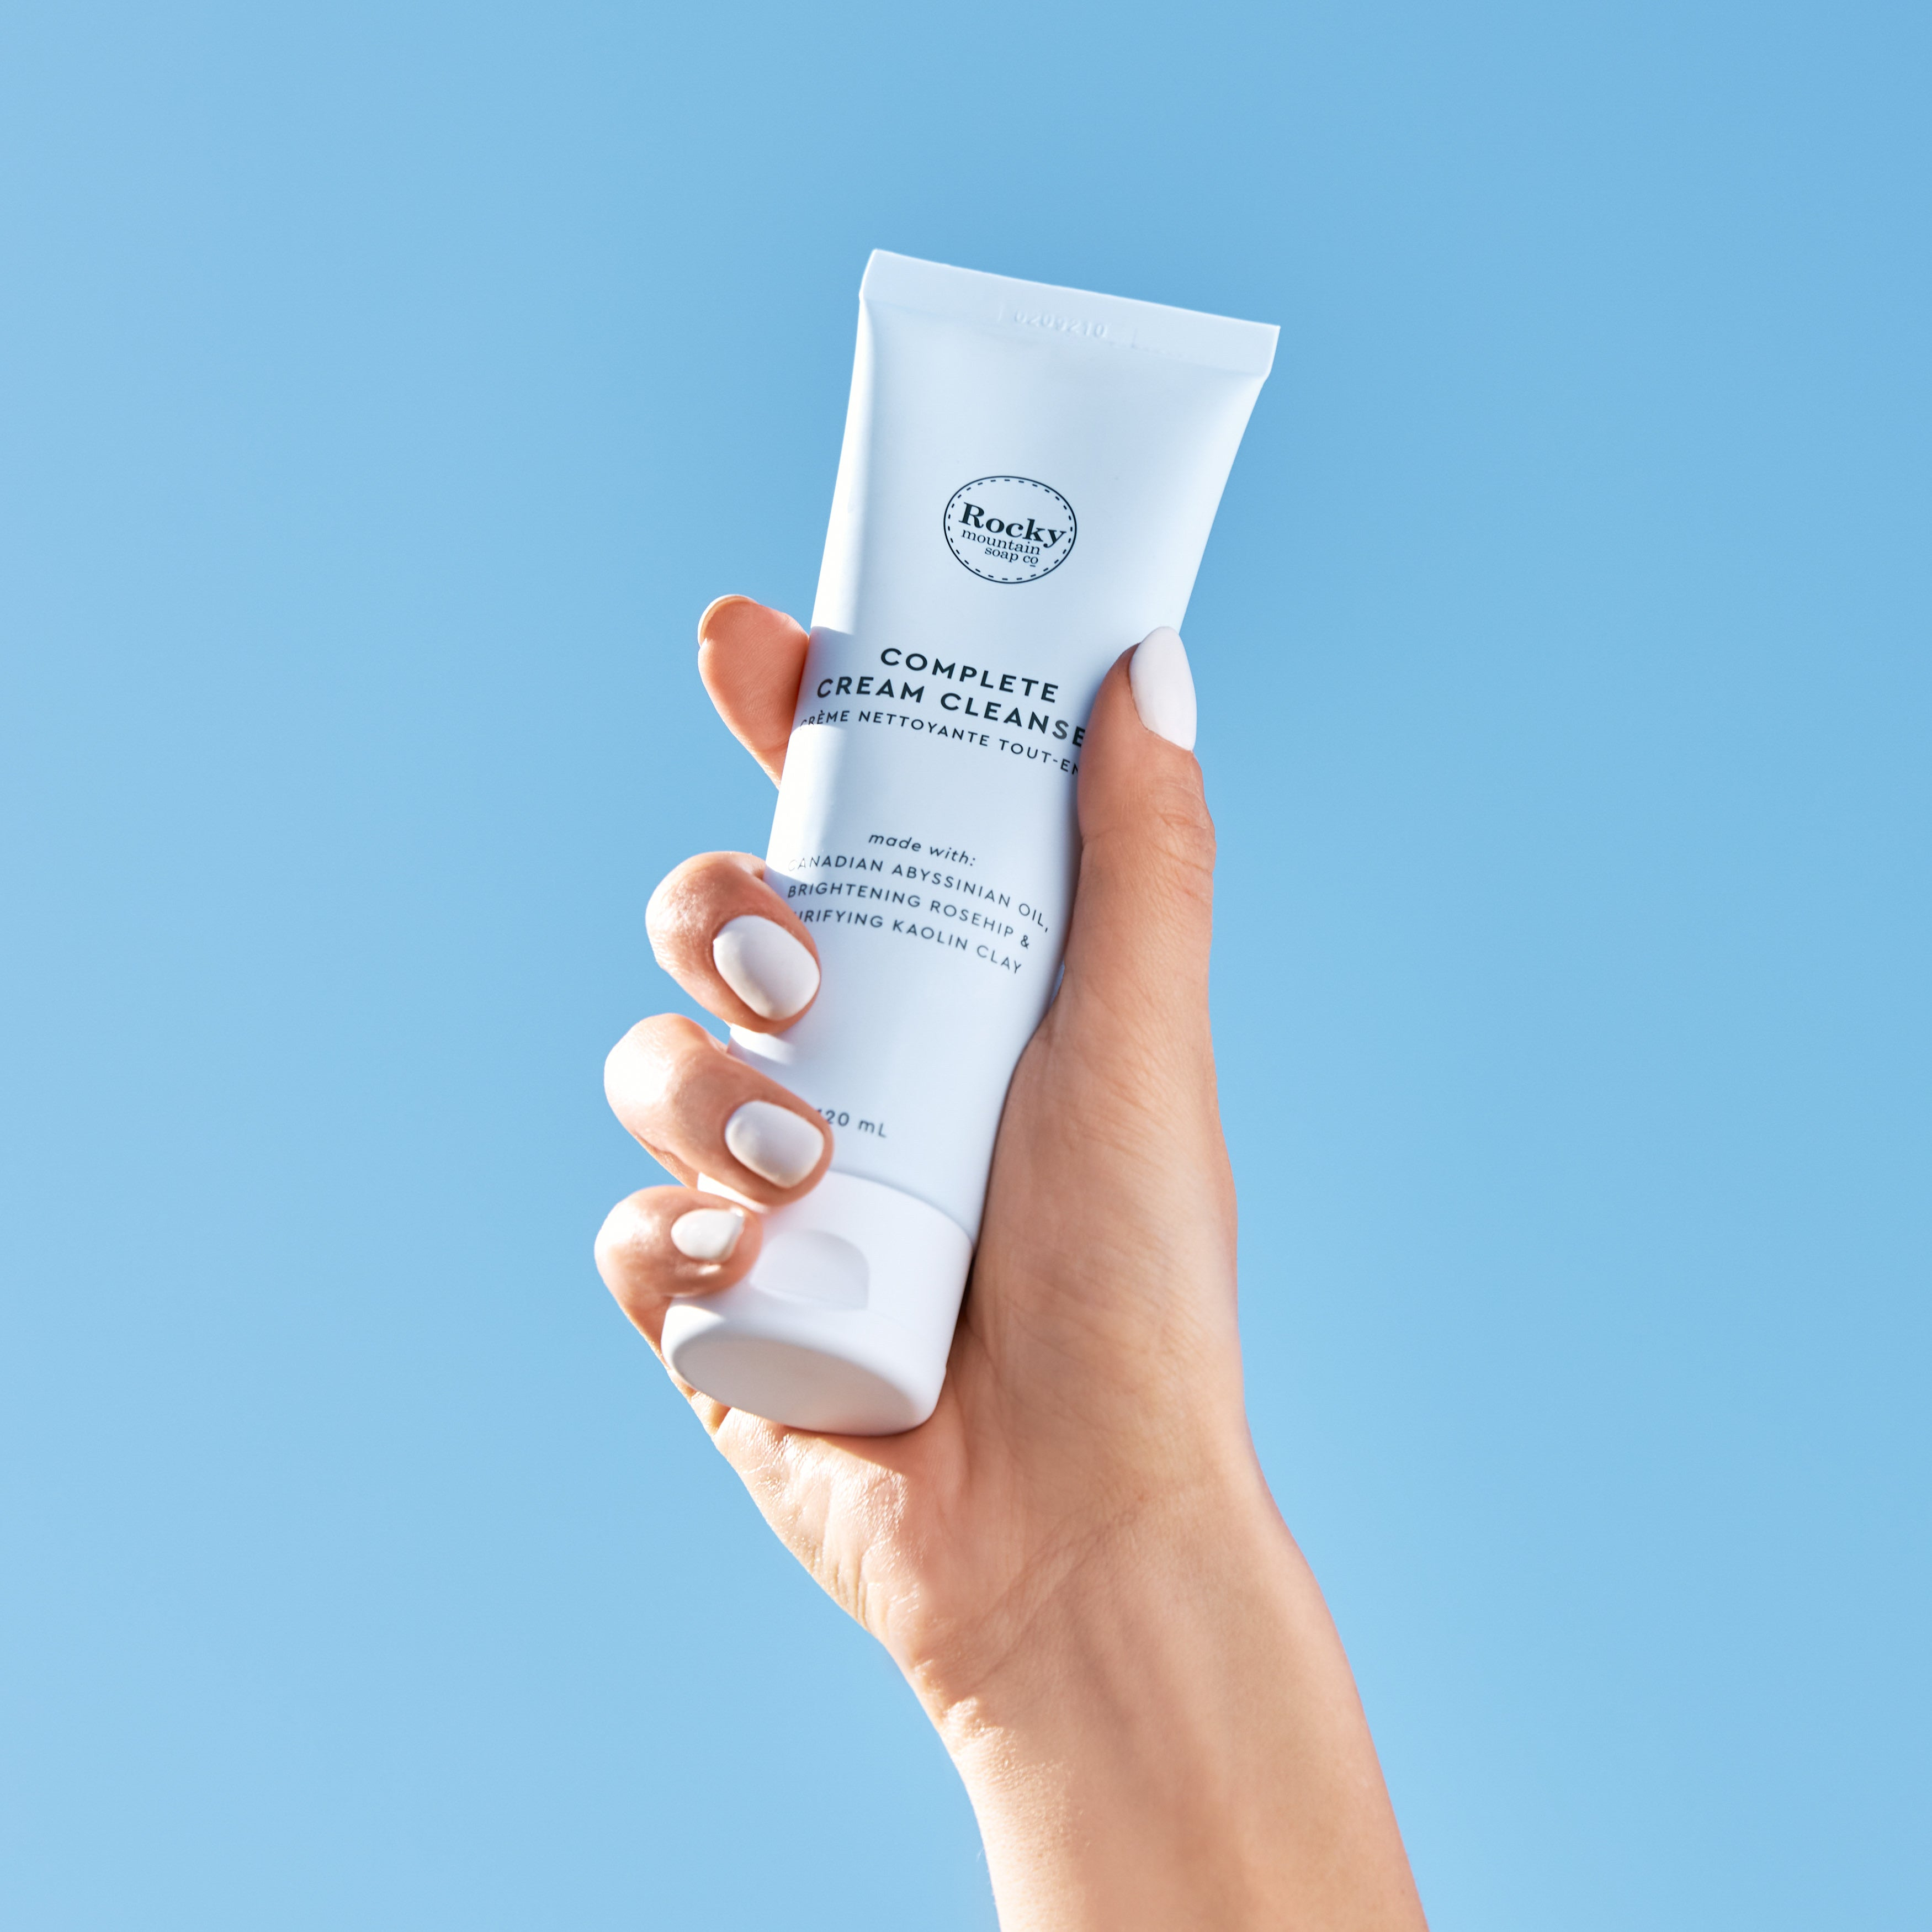 Image of natural cream cleanser being held up to the sky.